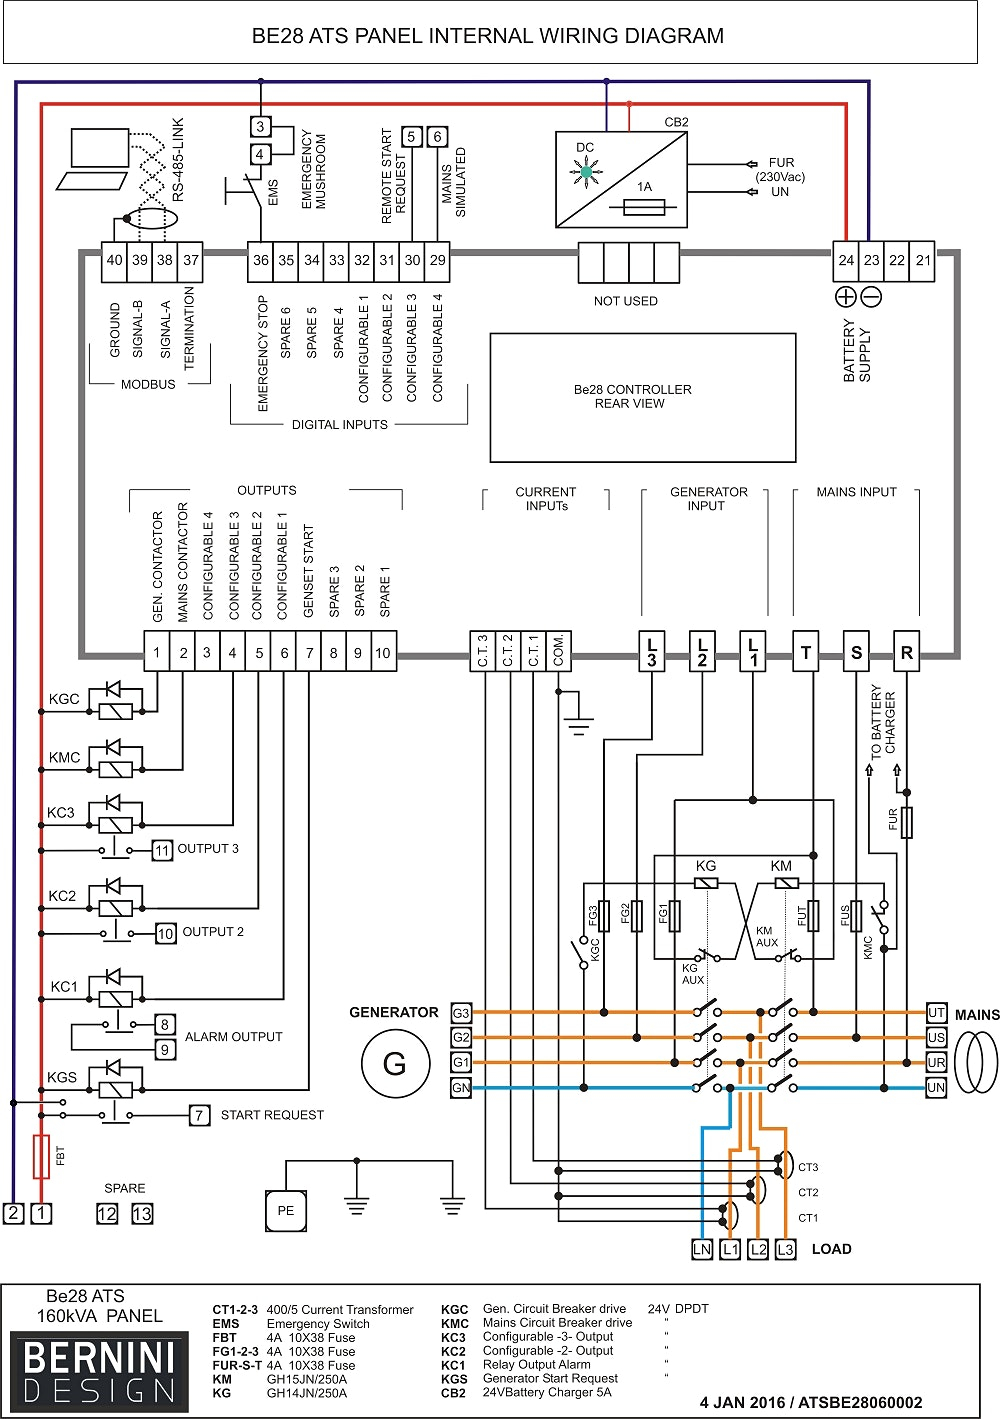 lenel access control wiring diagram Collection-Lenel Access Control Wiring Diagram And Beauteous Carlplant In Inside 1320 12-c